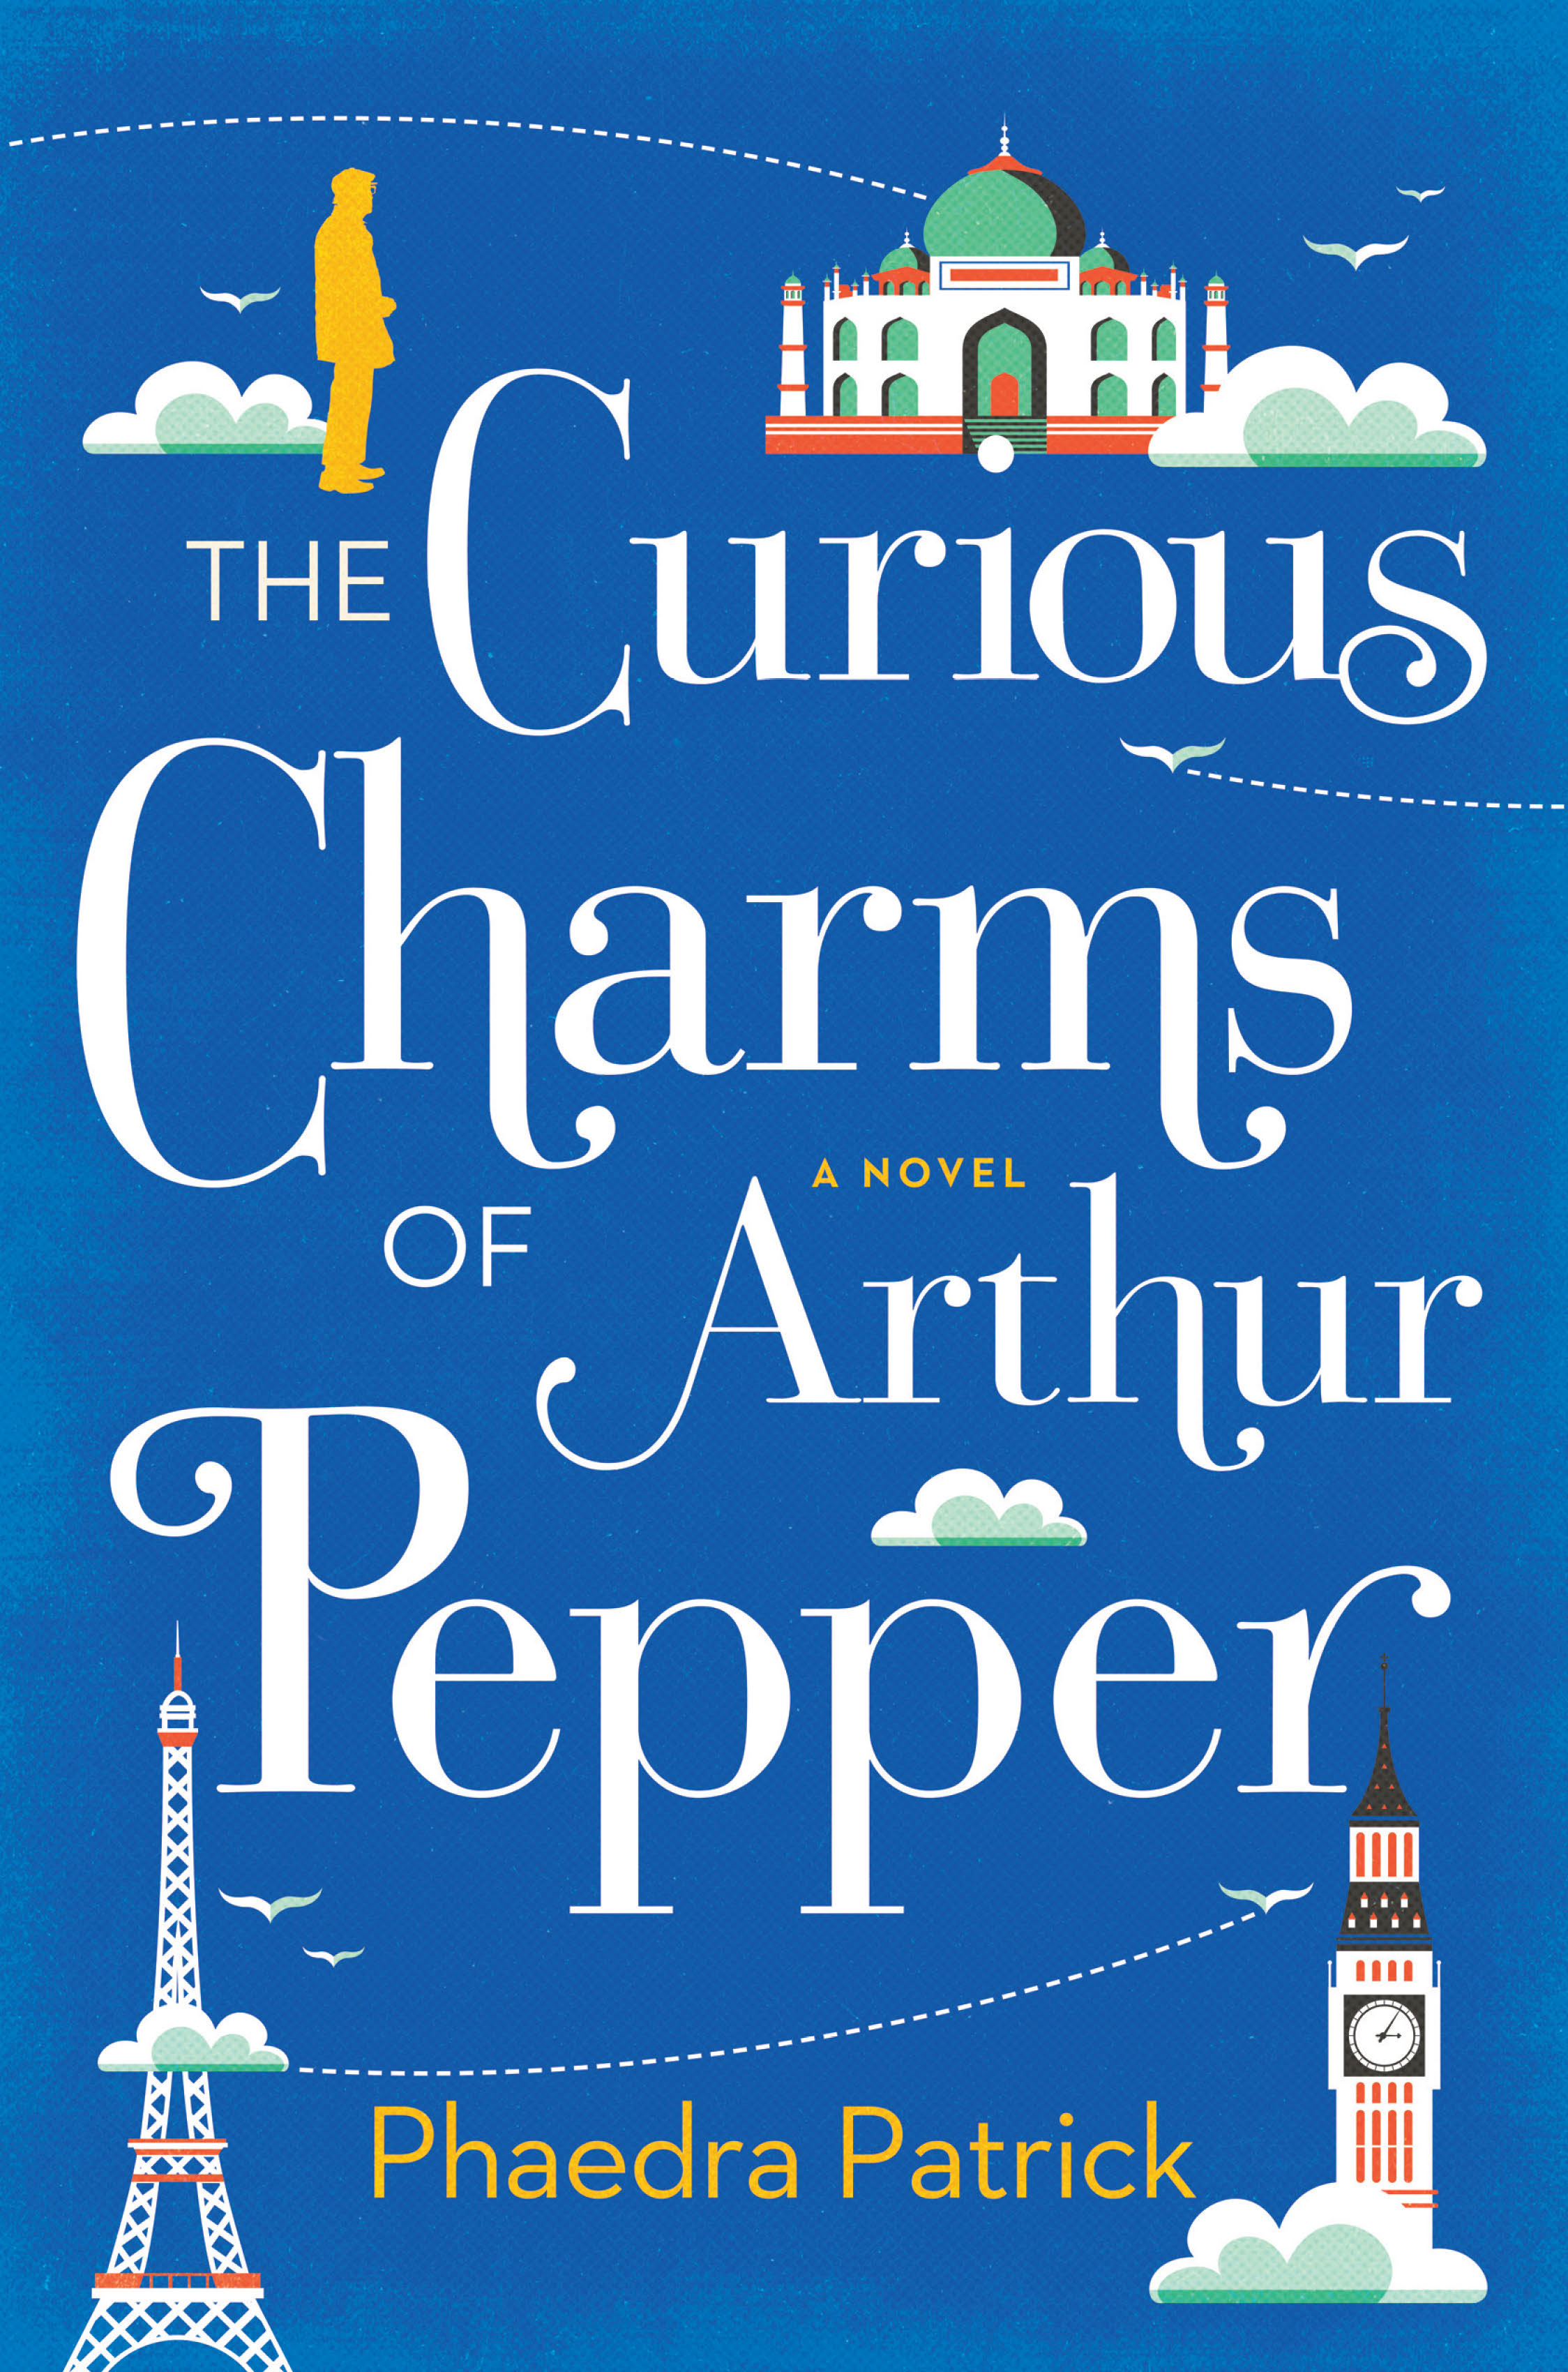 Pepper Finance Reviews The Curious Charms Of Arthur Pepper By Phaedra Patrick The Good